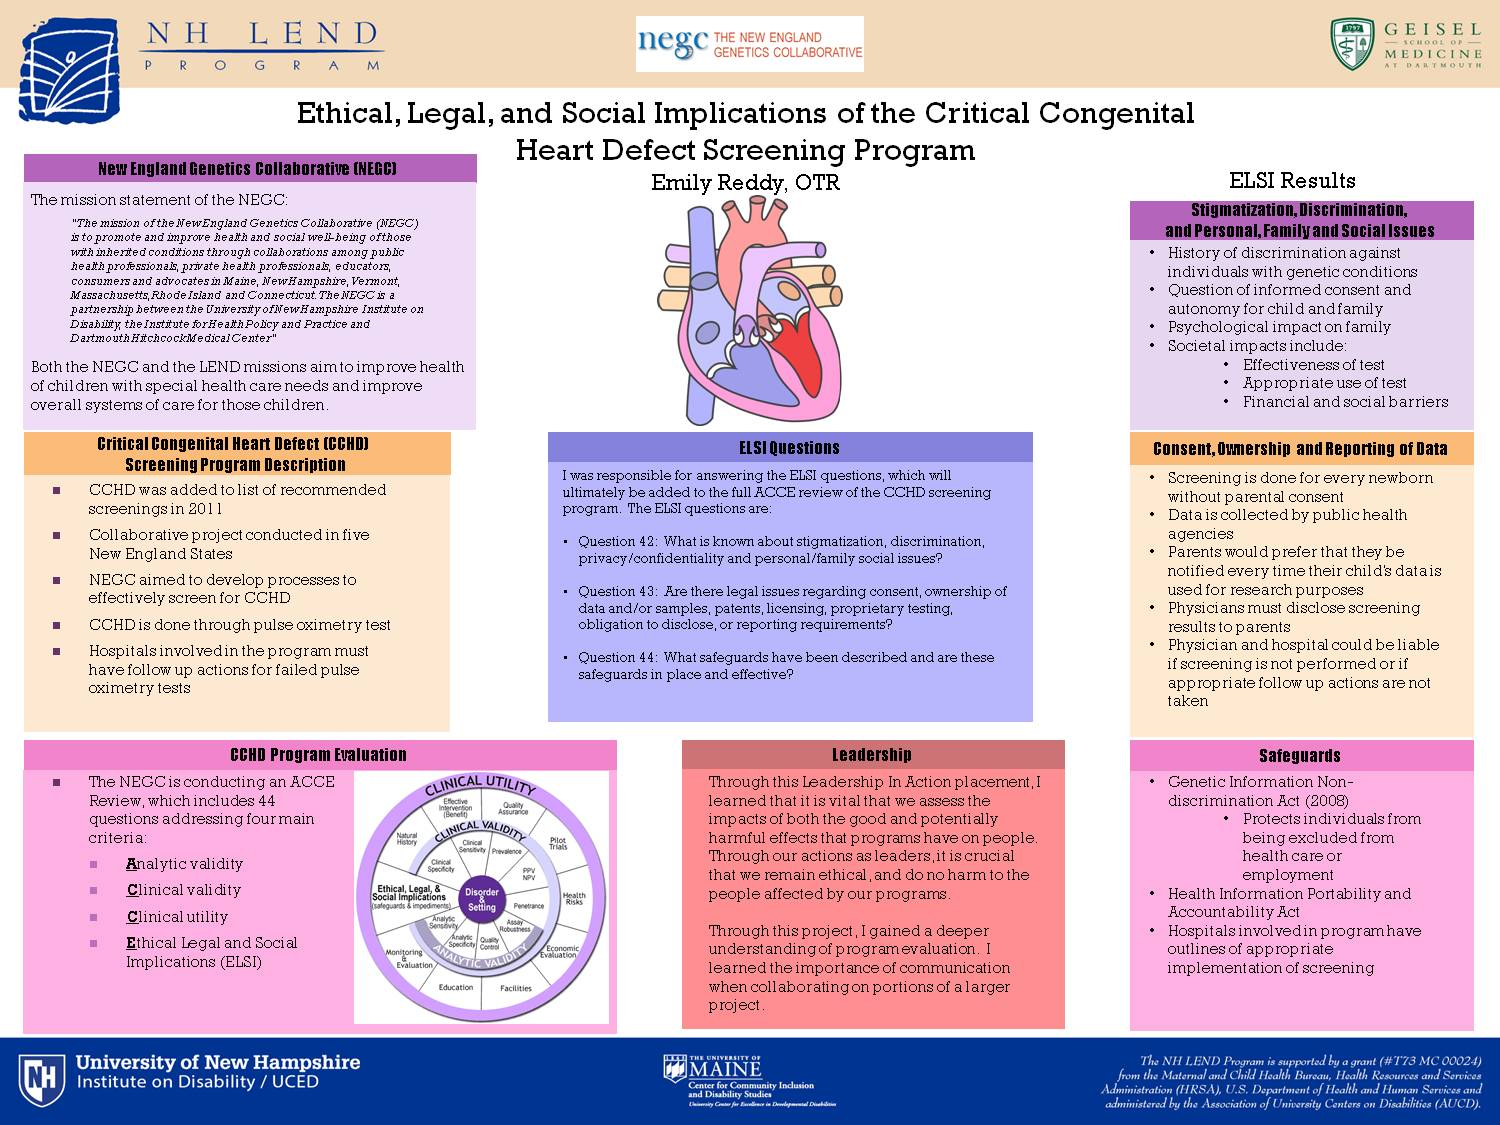 Ethical, Legal, And Social Implications Of The Critical Congenital Heart Defect Screening Program by efj9